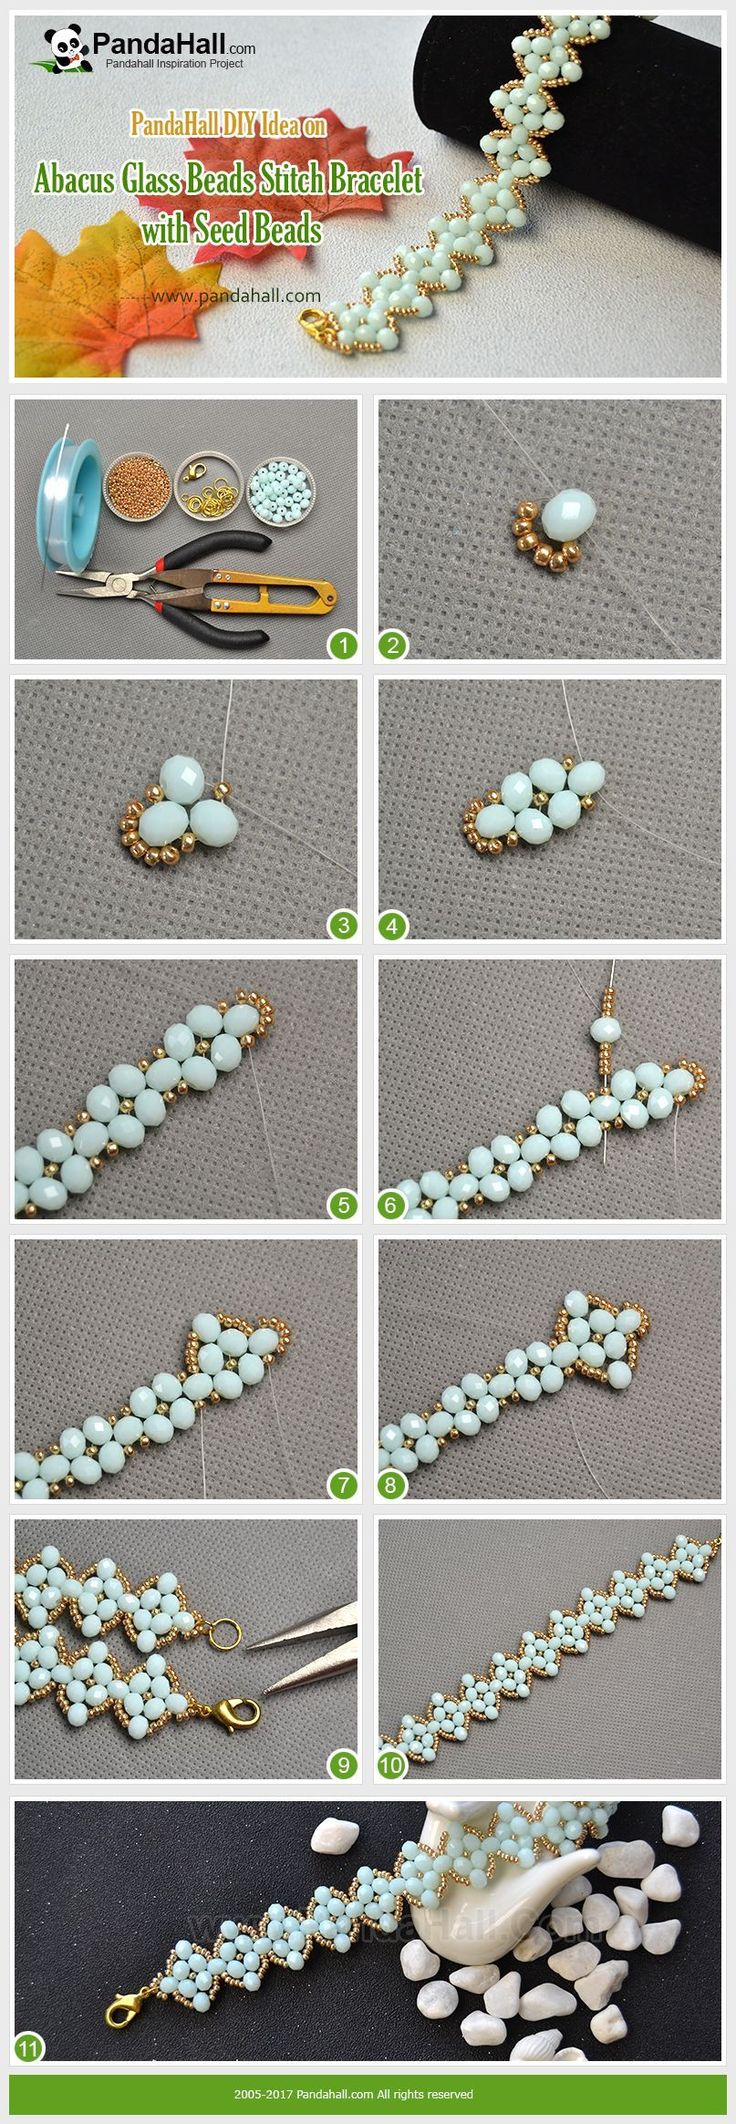 Pandahall DIY Craft on Abacus Glass Beads Stitch Bracelet with Seed Beads Use gold abacus seed beads and pale turquoise abacus glass beads to stitch a wide bracelet, and you will be surprised at the smart way! #diybracelets